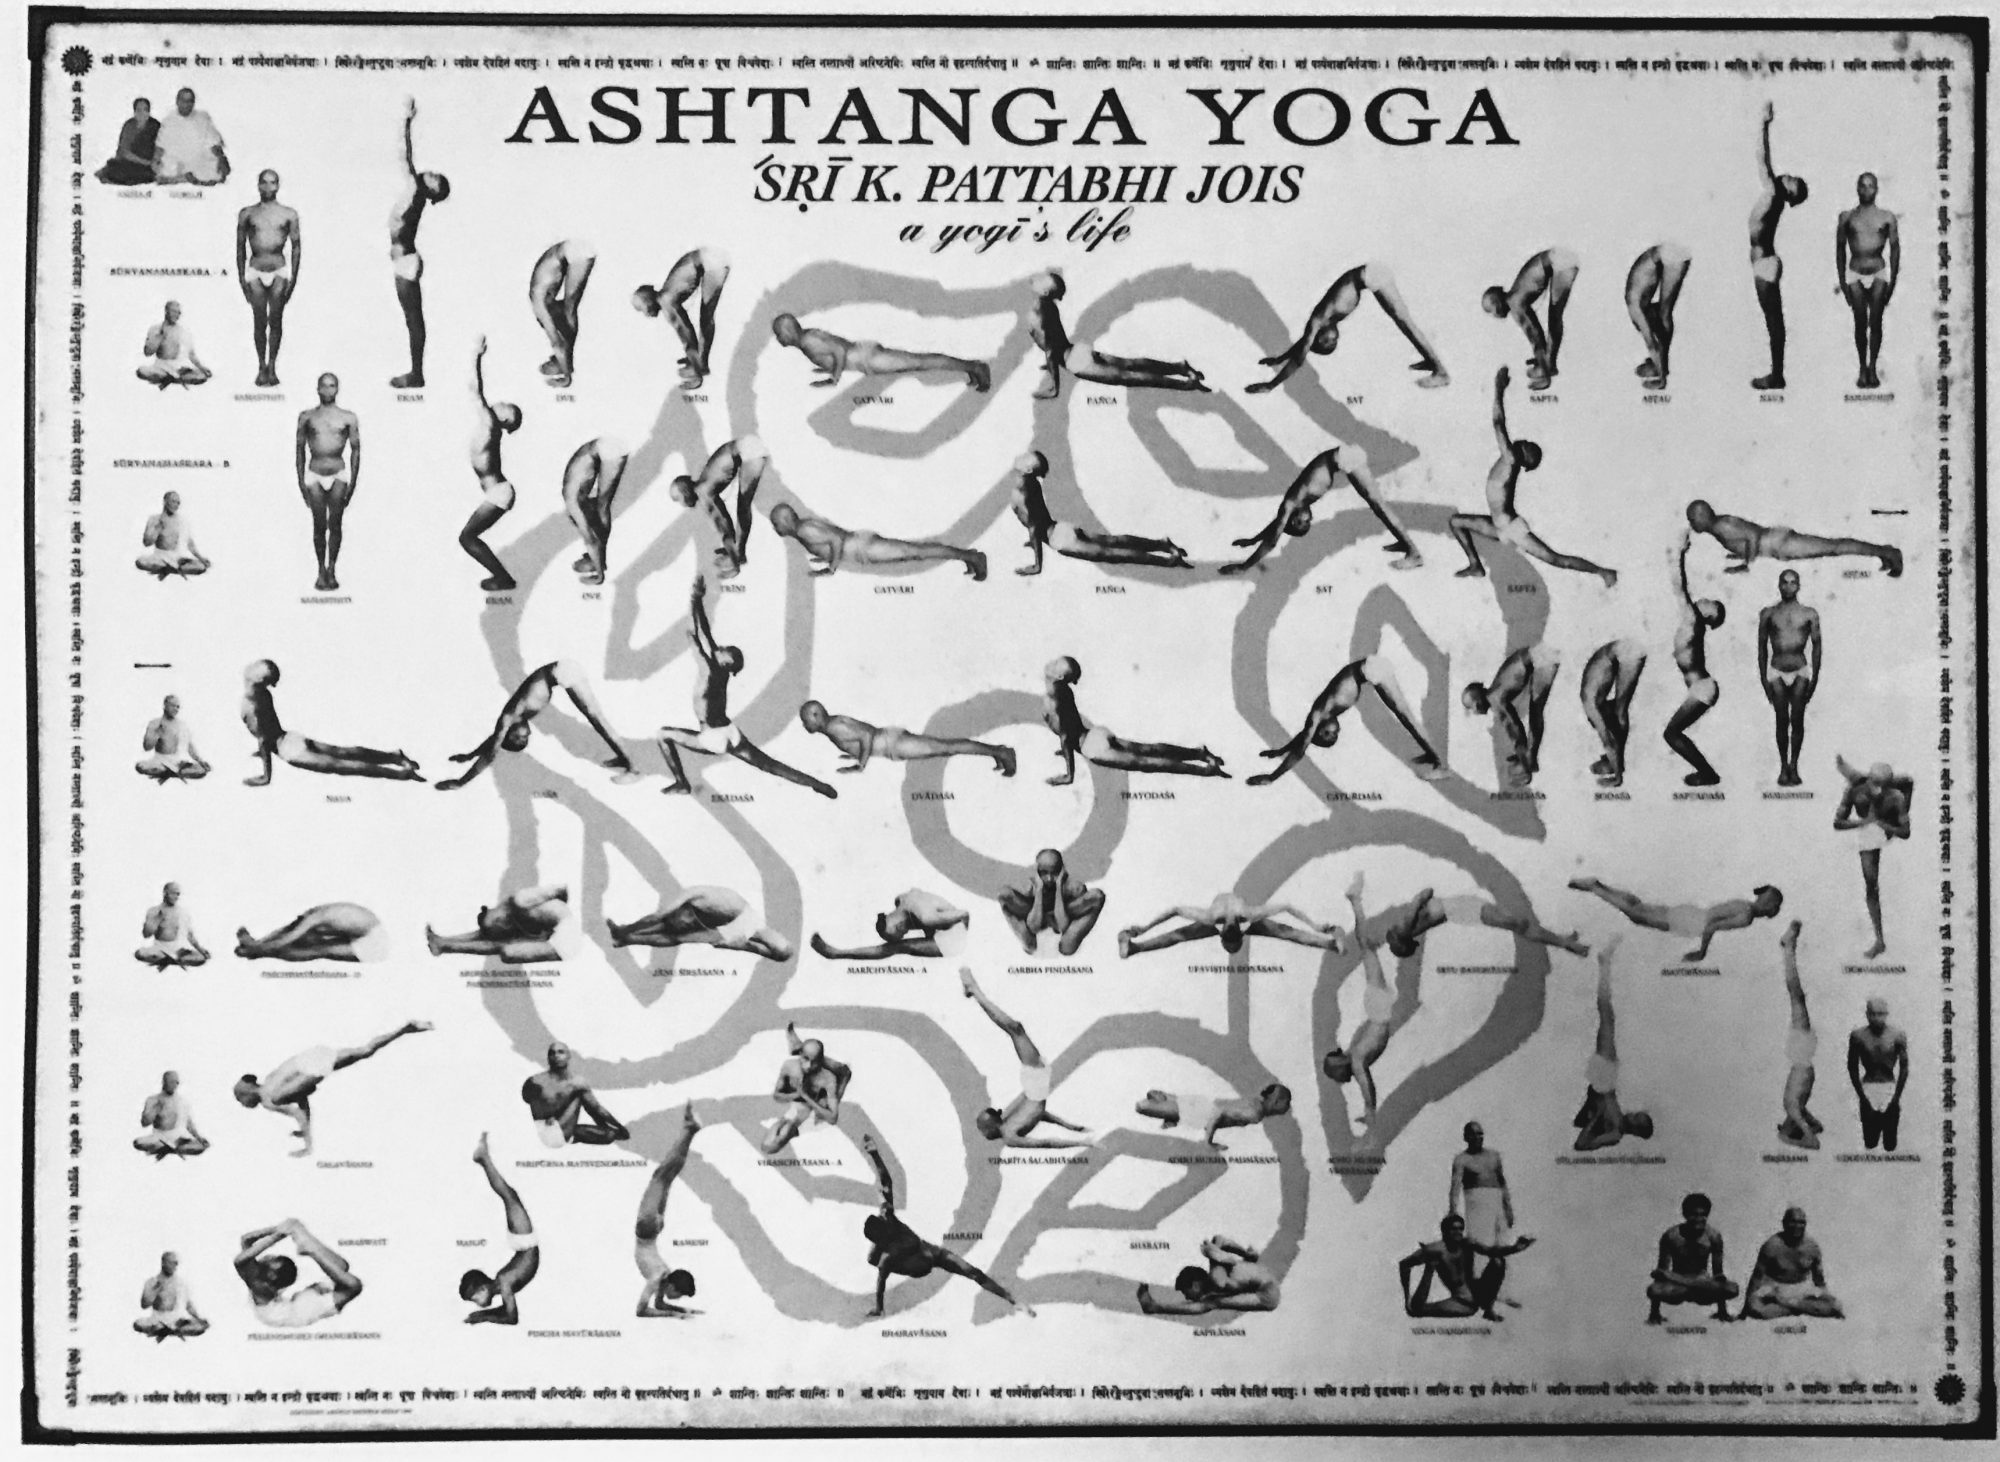 Ashtanga Yoga Denver